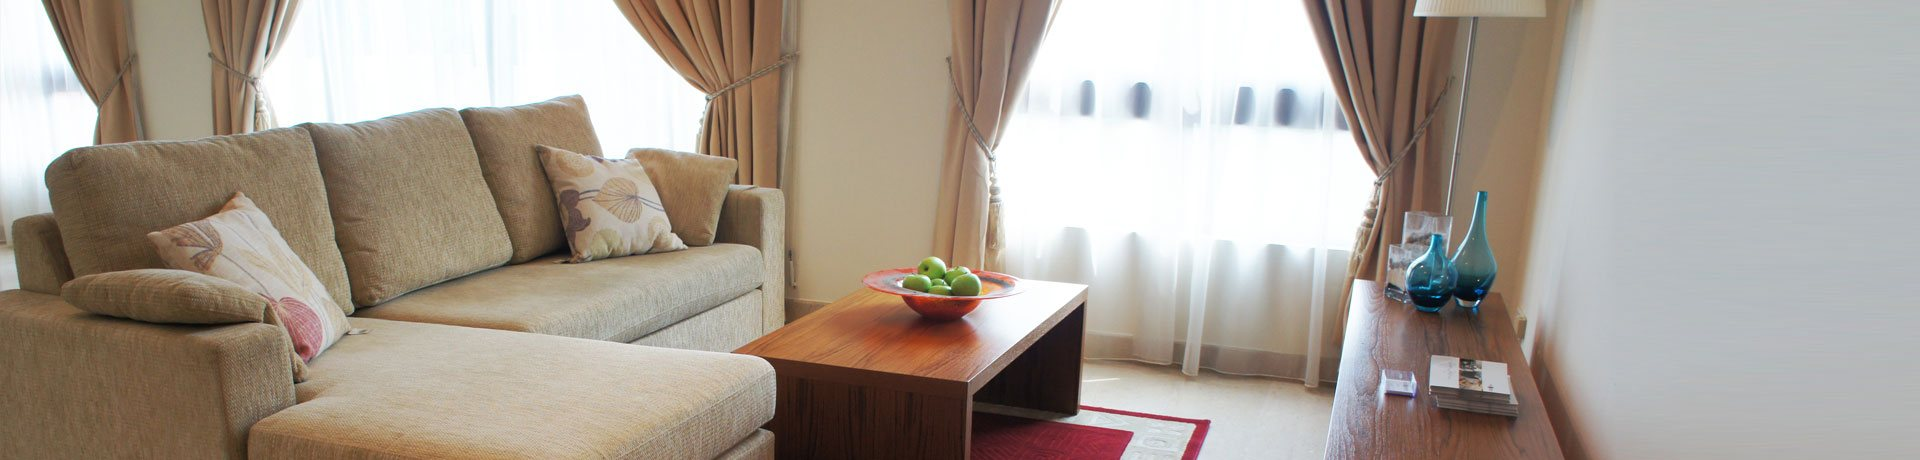 Singapore Most Trusted Furniture Rental Company : 02main from furnitureleasing.com.sg size 1920 x 460 jpeg 106kB